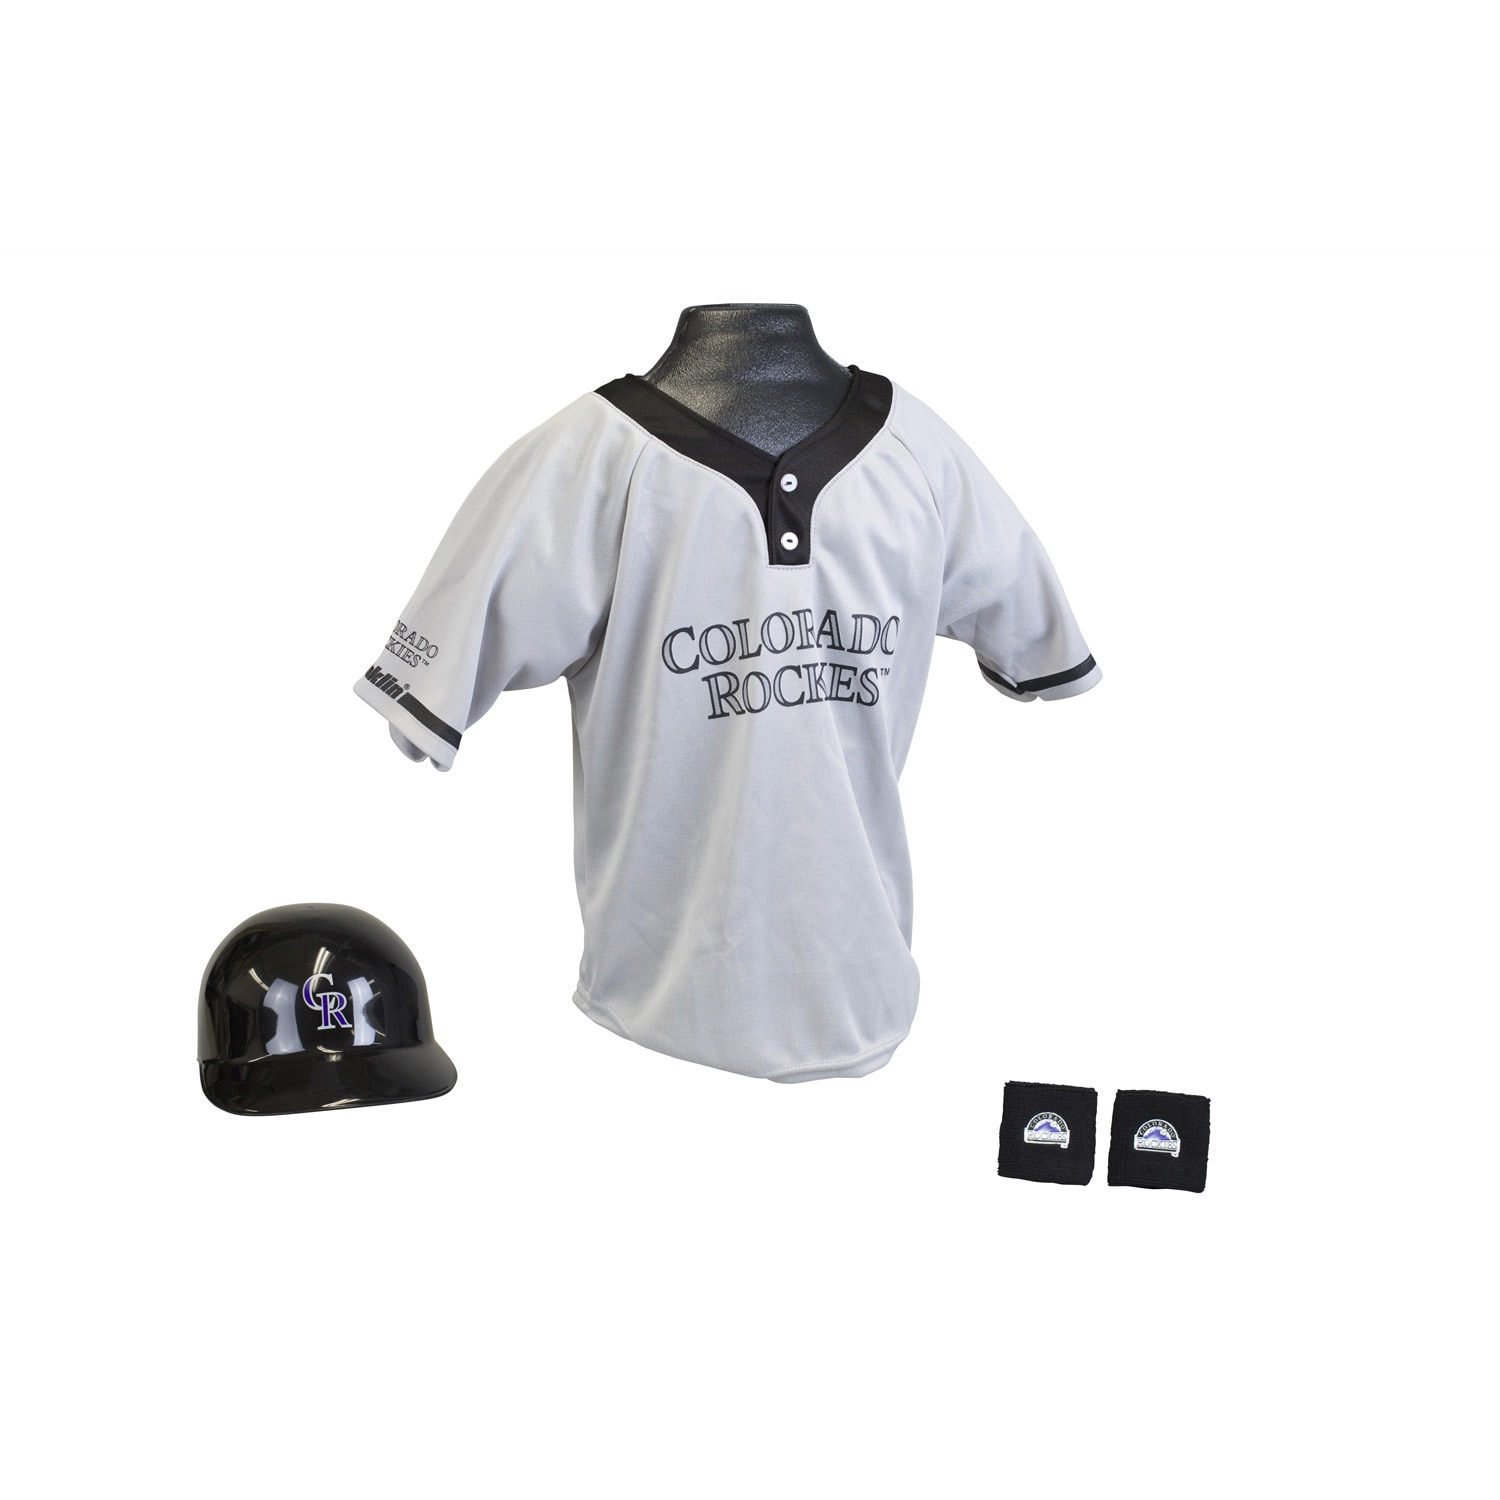 daf27d120acb Shop Franklin Sports MLB Colorado Rockies Kids Team Uniform Set - Free  Shipping On Orders Over  45 - Overstock.com - 6440048